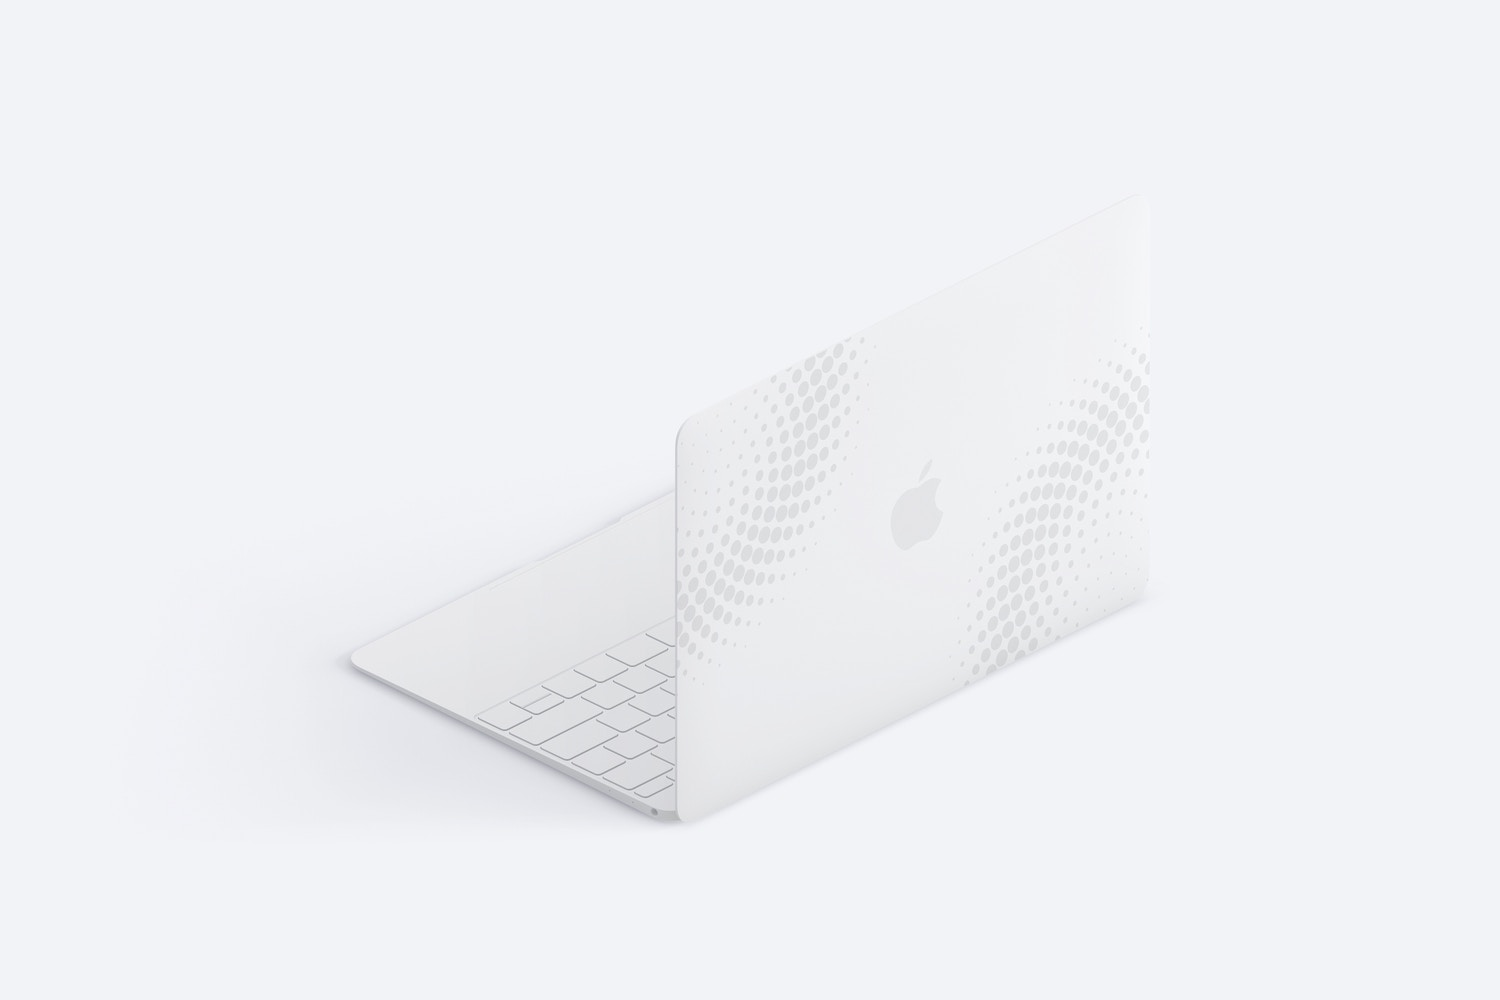 Clay MacBook Mockup, Isometric Back Right View by Original Mockups on Original Mockups